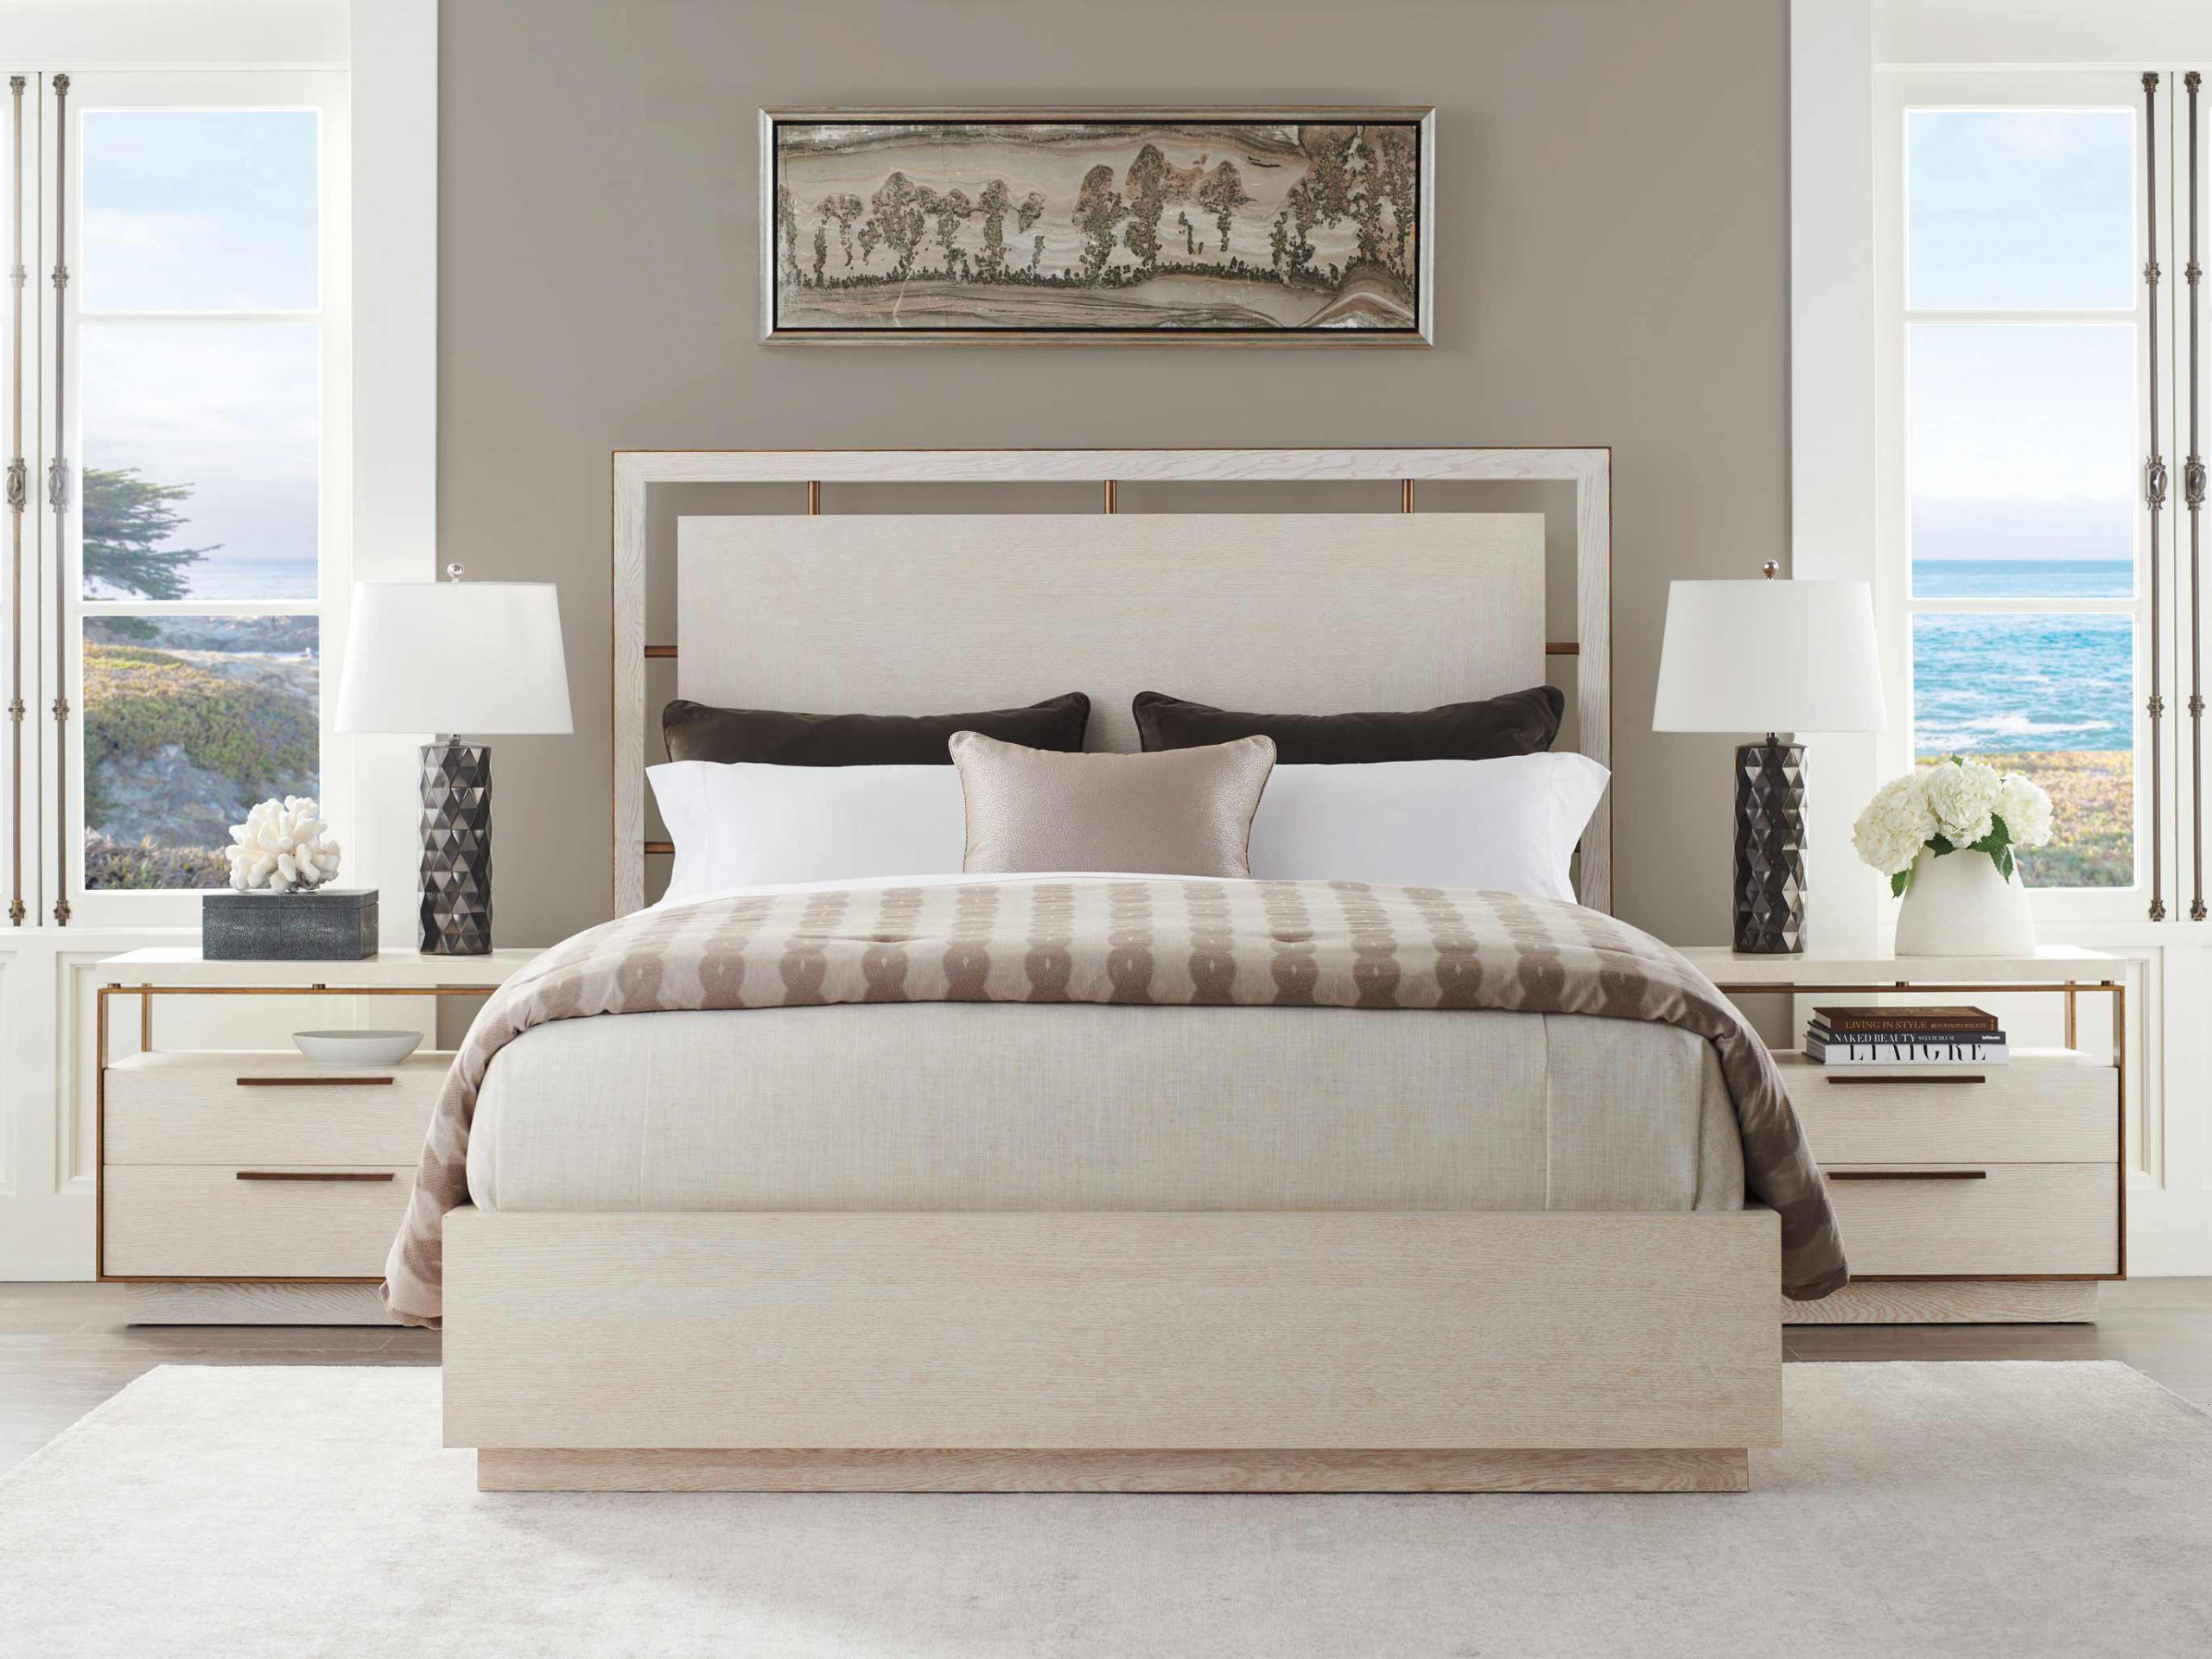 Bedroom product image